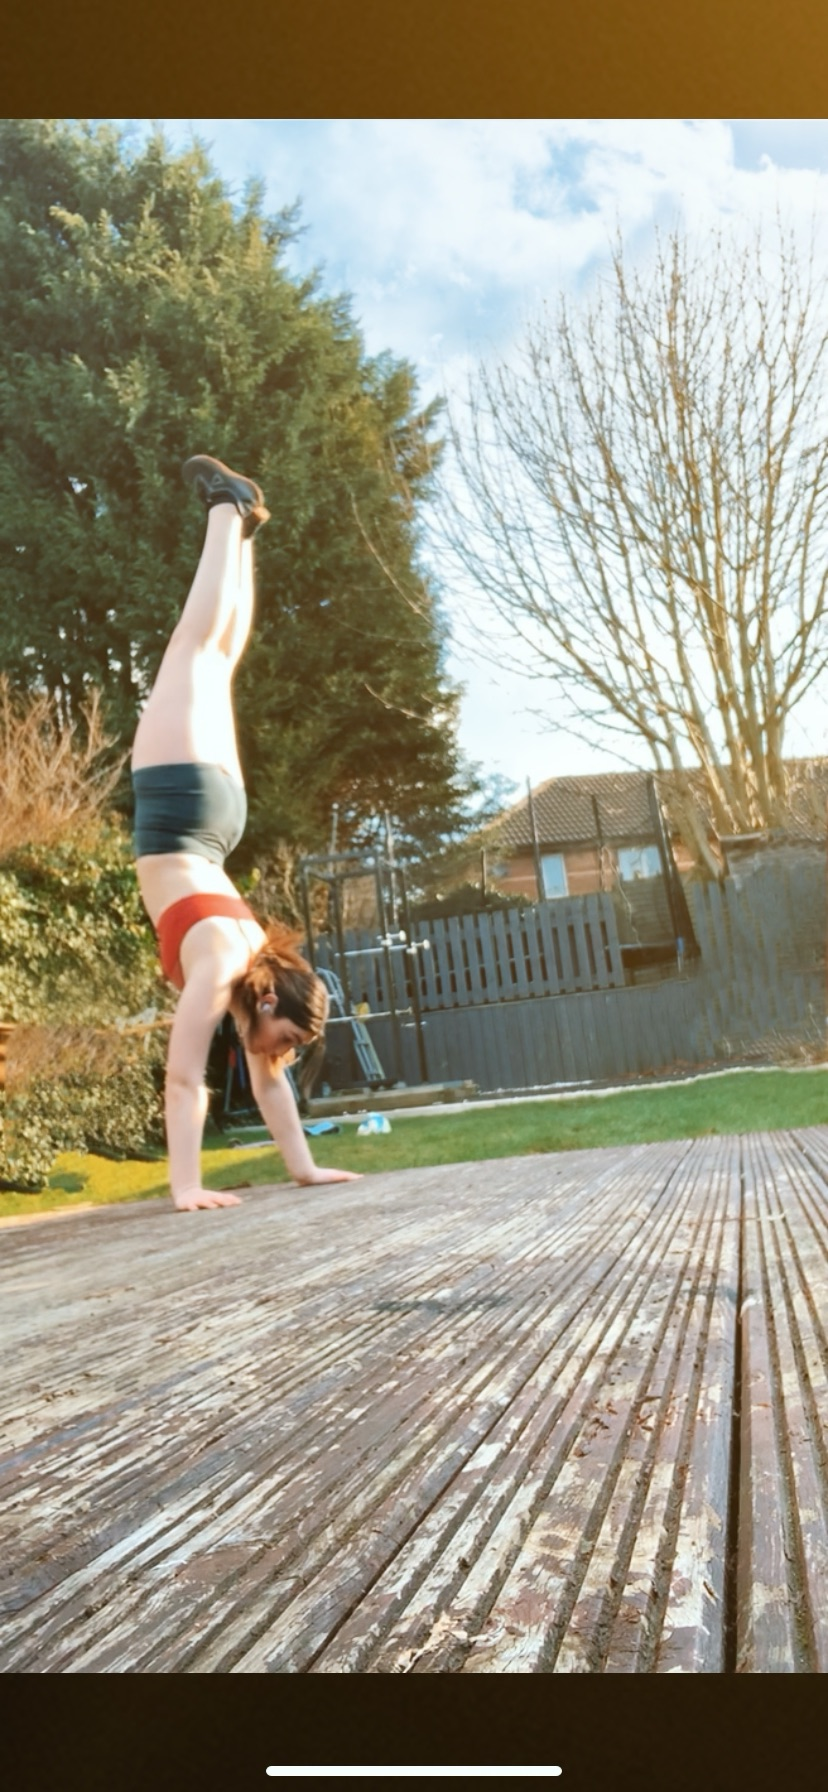 Molly handstand walking with Type 1 Diabetes